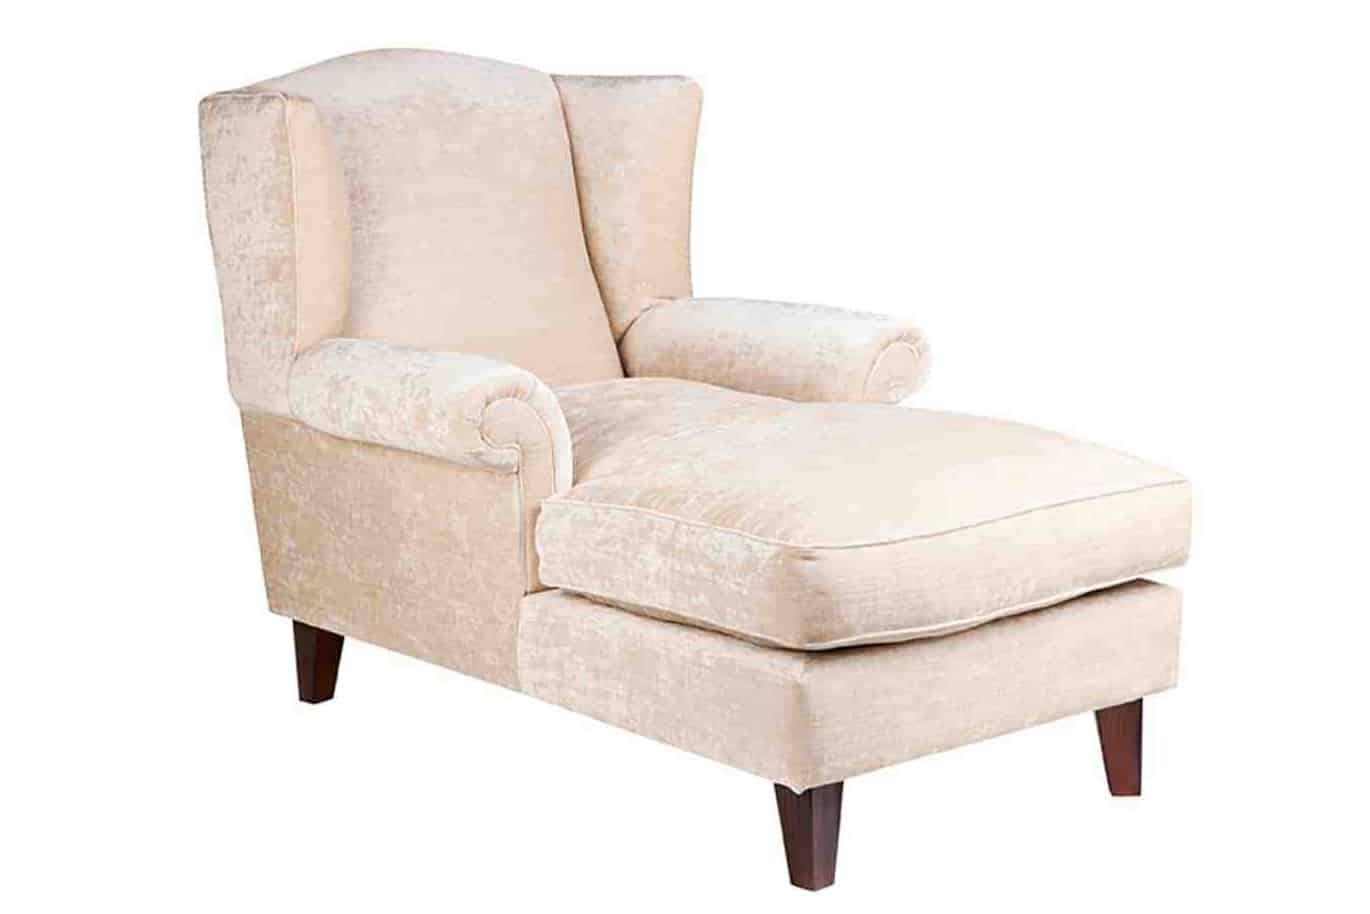 Chaise lounge - Designer Chair - Accent chair - Boutique Chair - Occasional Chair -Warwick Fabric